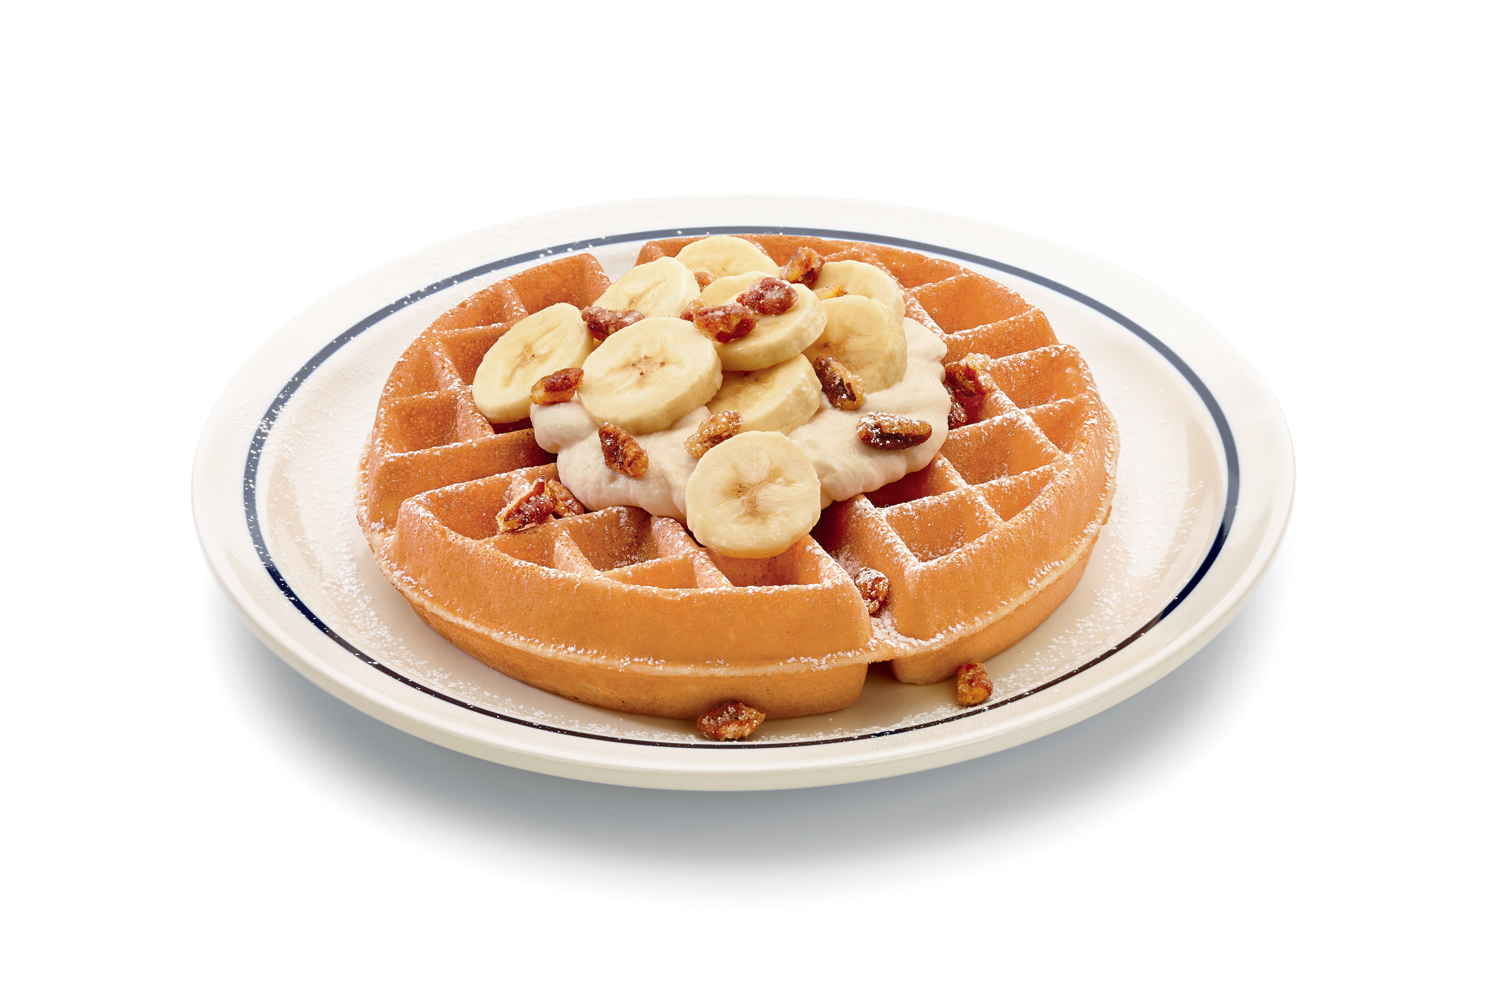 Cream Belgian Waffle - A traditional thick and crispy Belgian waffle ...